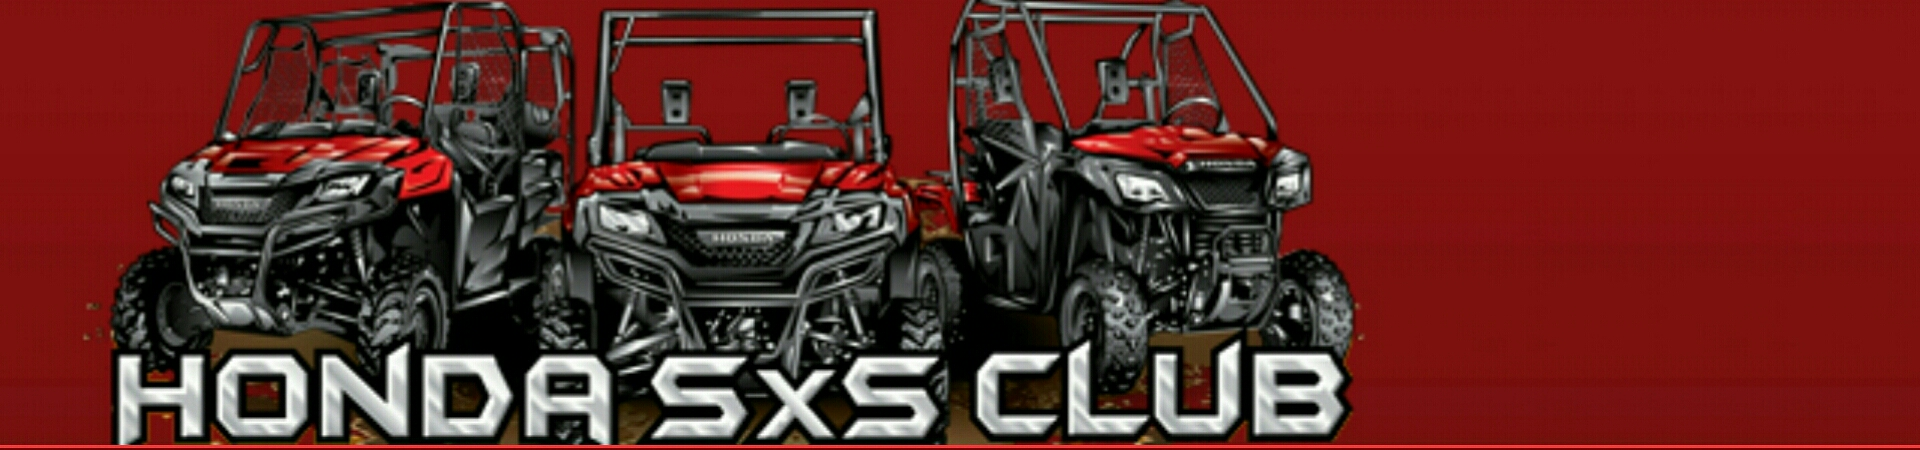 Honda SxS UTV Side by Side Model Lineup News Owners Forum